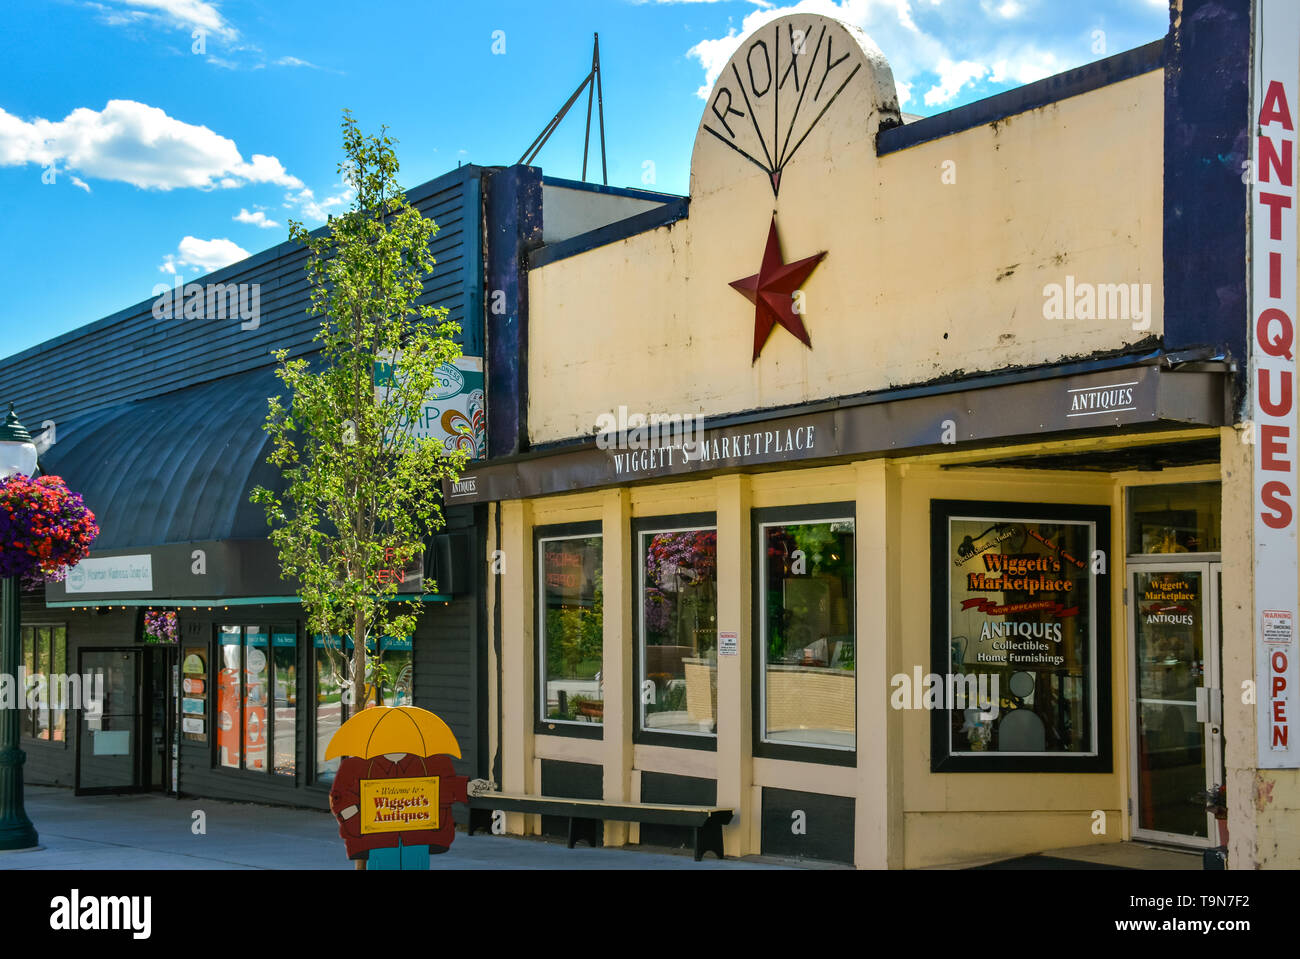 Storefront and entrance to Wiggett's Marketplace, an Antique store in a cool, vintage building in downtown Coeur d'Alene, ID - Stock Image